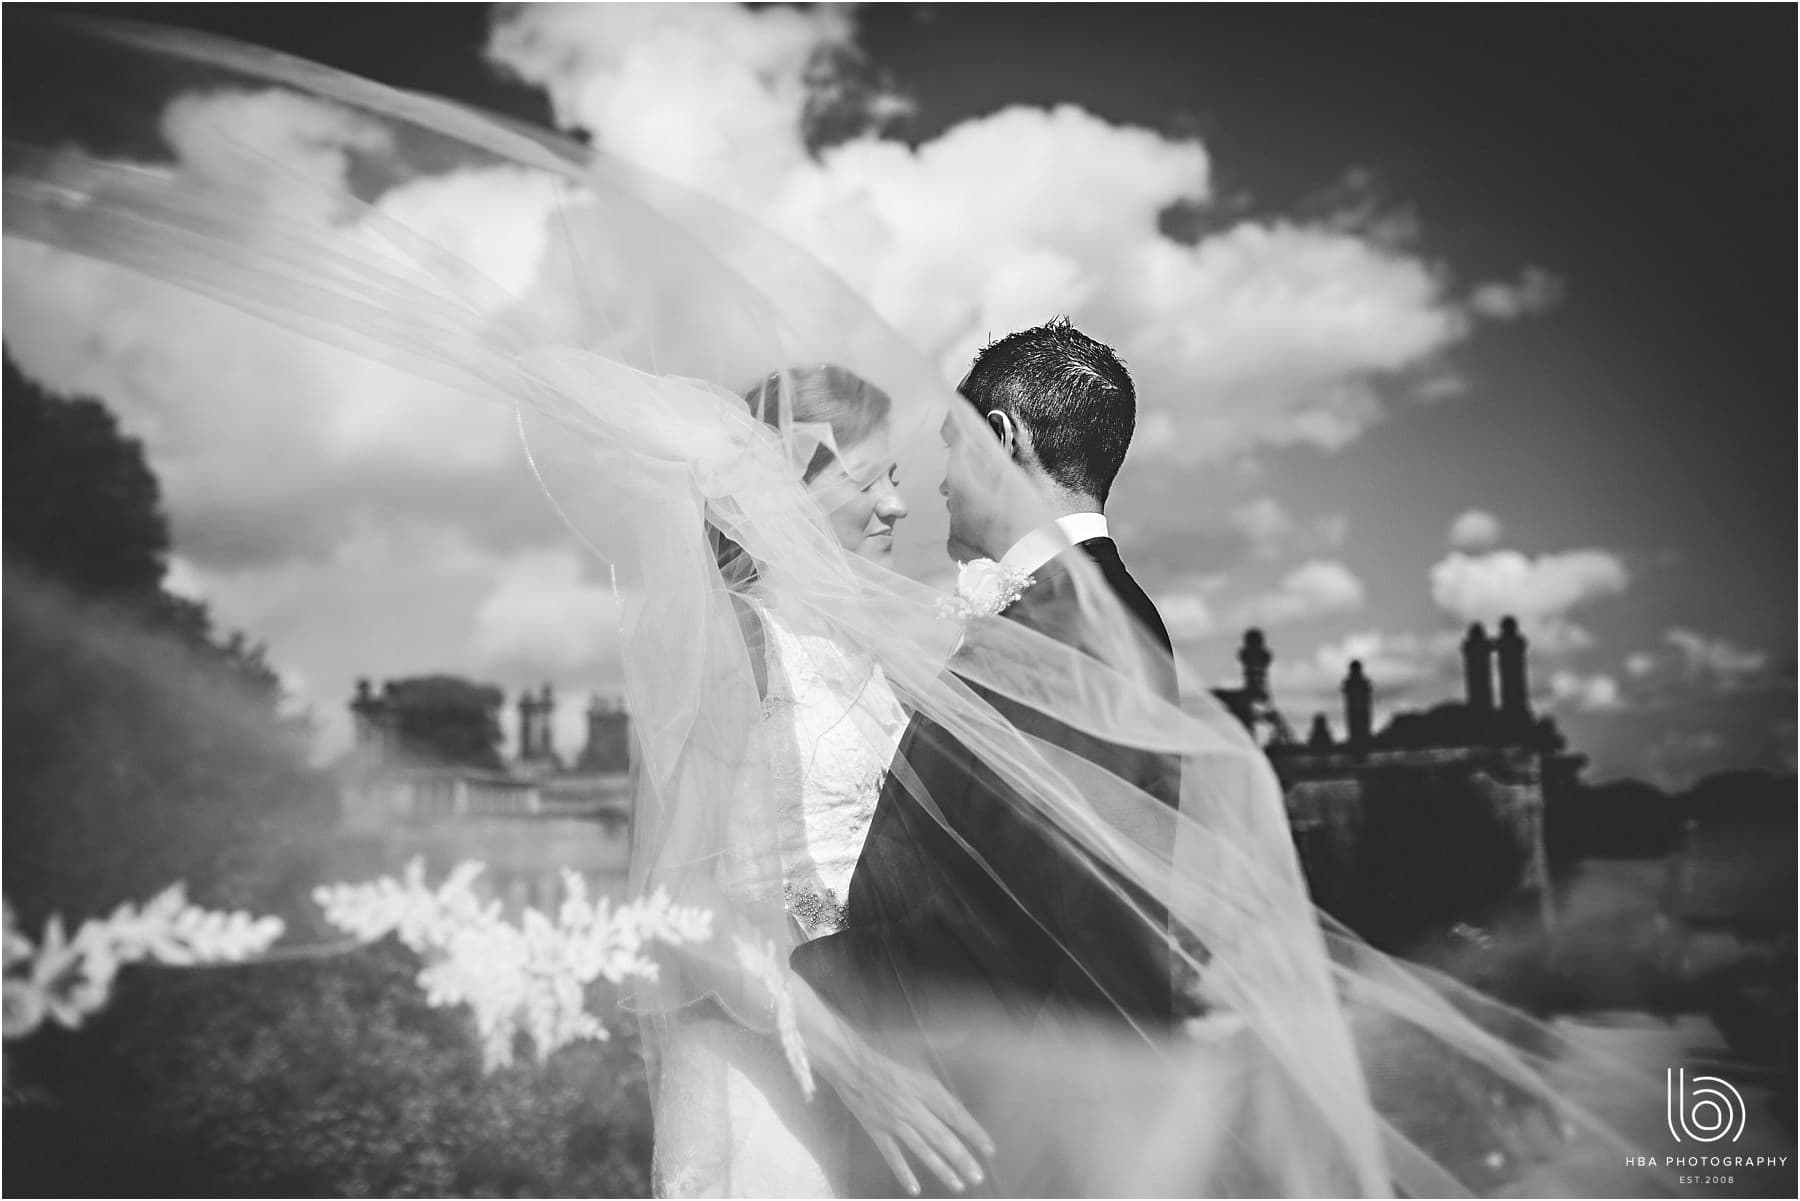 the bride & groom with the veil blowing in the wind